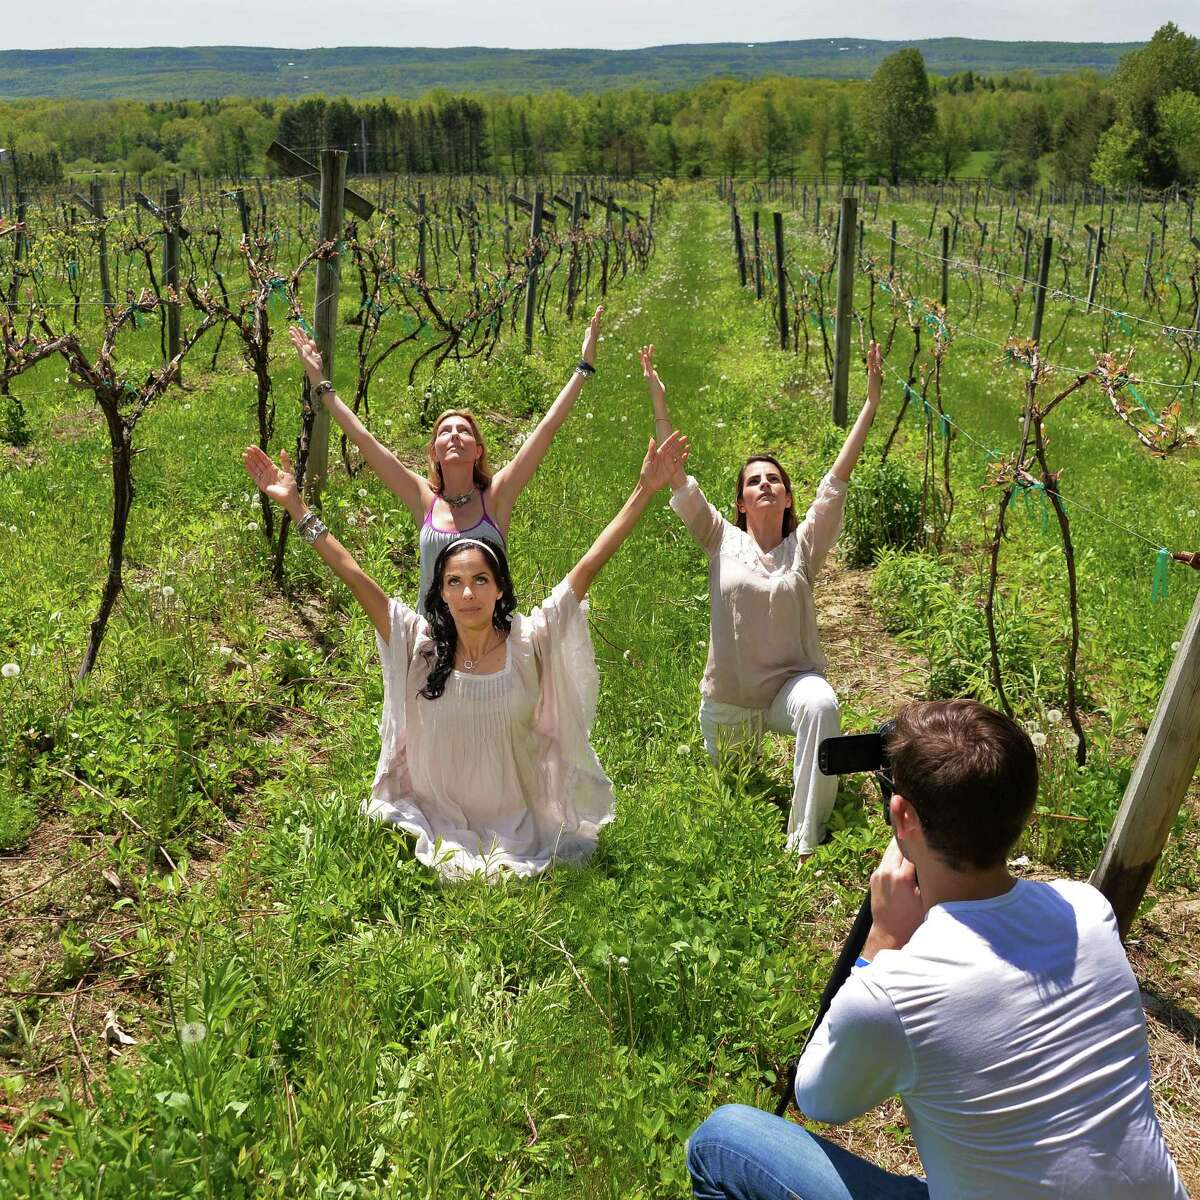 From left, Lisa O'Brien of Lifeyum, Franca DiCrescenzo of Armida Rose Realty and Gina Tralongo of Freestyle Fitness & Yoga strike yoga poses for videographer Kaleb Dubin as they shoot a promotional video for the upcoming Vinyoga Festival at the Altamont Vineyard Winery Wednesday May 21, 2014, in Altamont, NY. (John Carl D'Annibale / Times Union)